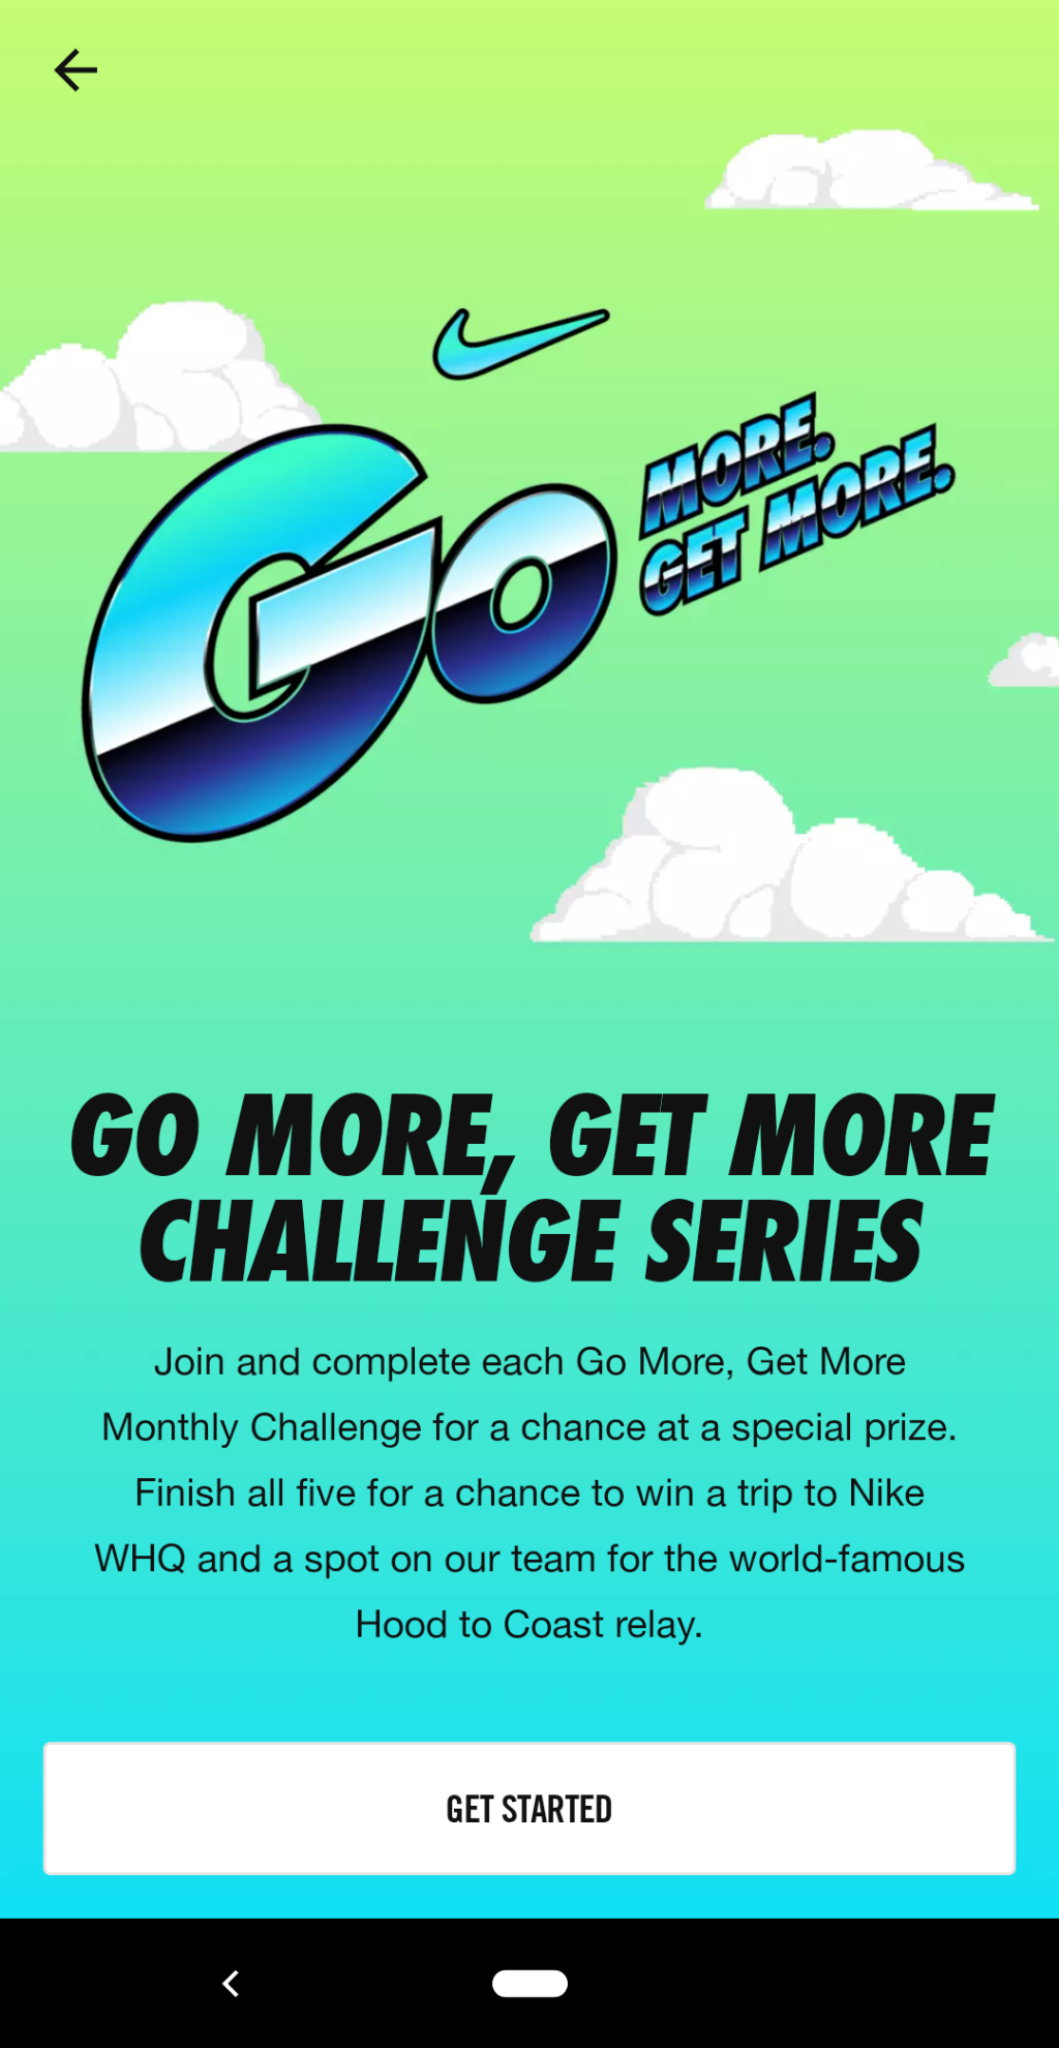 this is a mobile screenshot image of the nike run club app that shows an example of an in-app challenge designed to increase user motivation and engagement